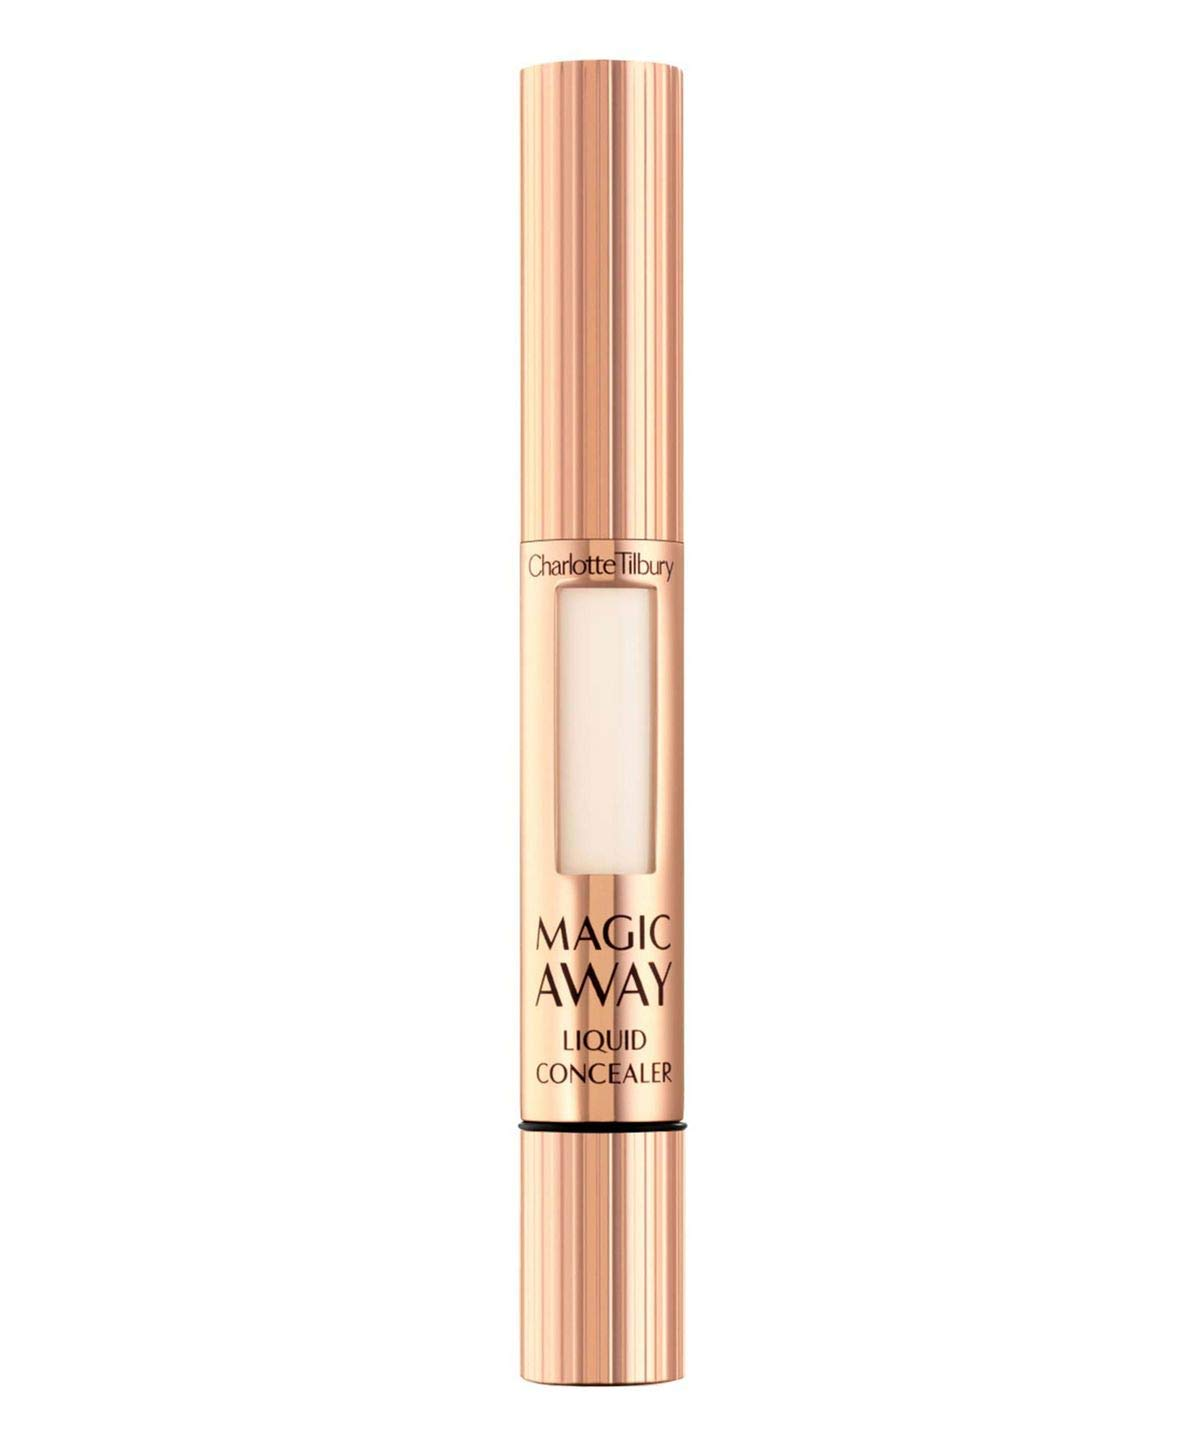 Charlotte Tilbury Magic Away Concealer - 7 by CHARLOTTE TILBURY